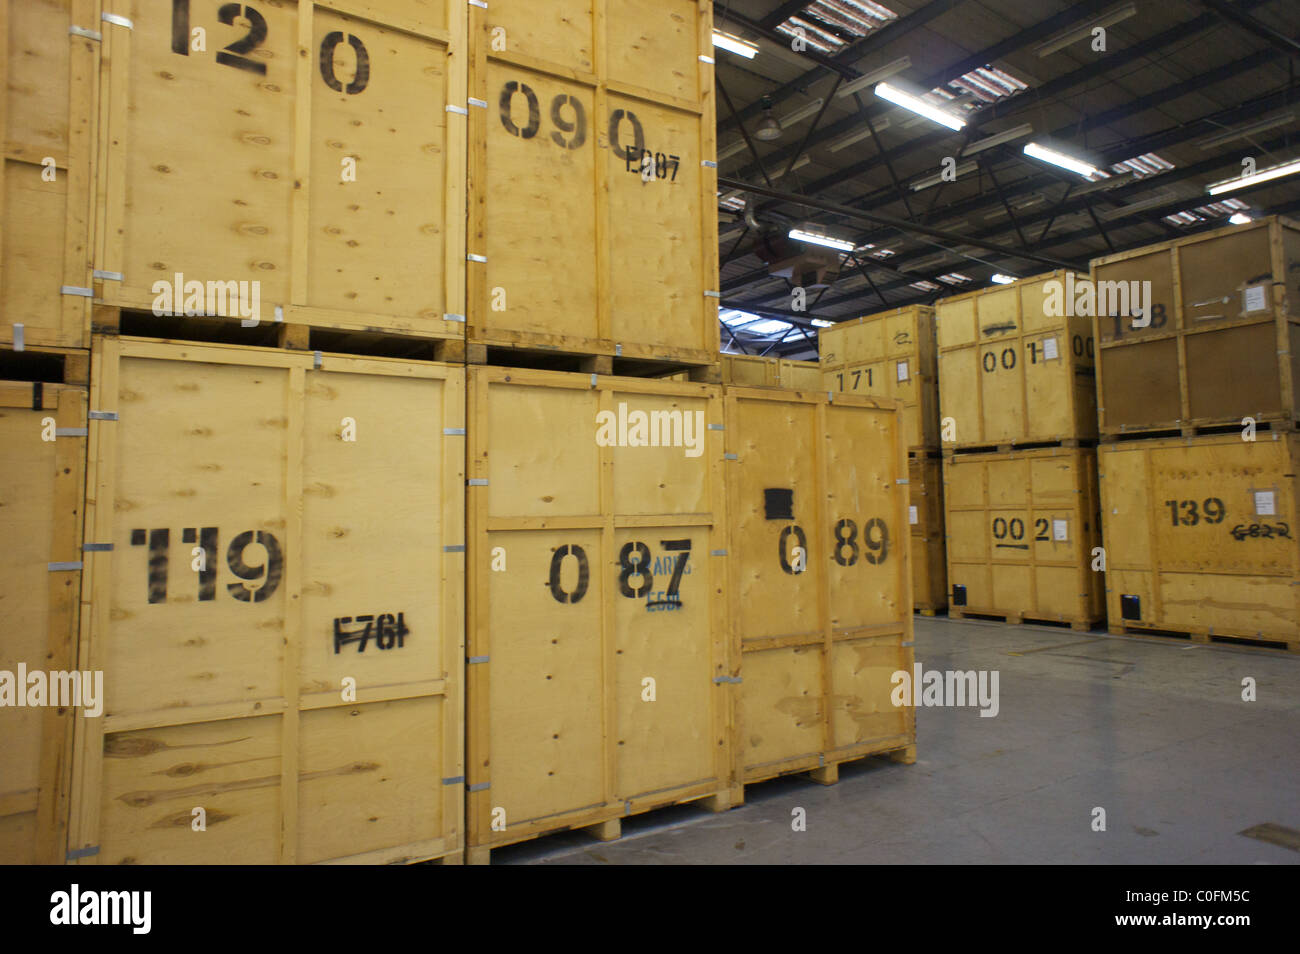 Wooden Storage Containers Stacked In A Warehouse In London   Stock Image